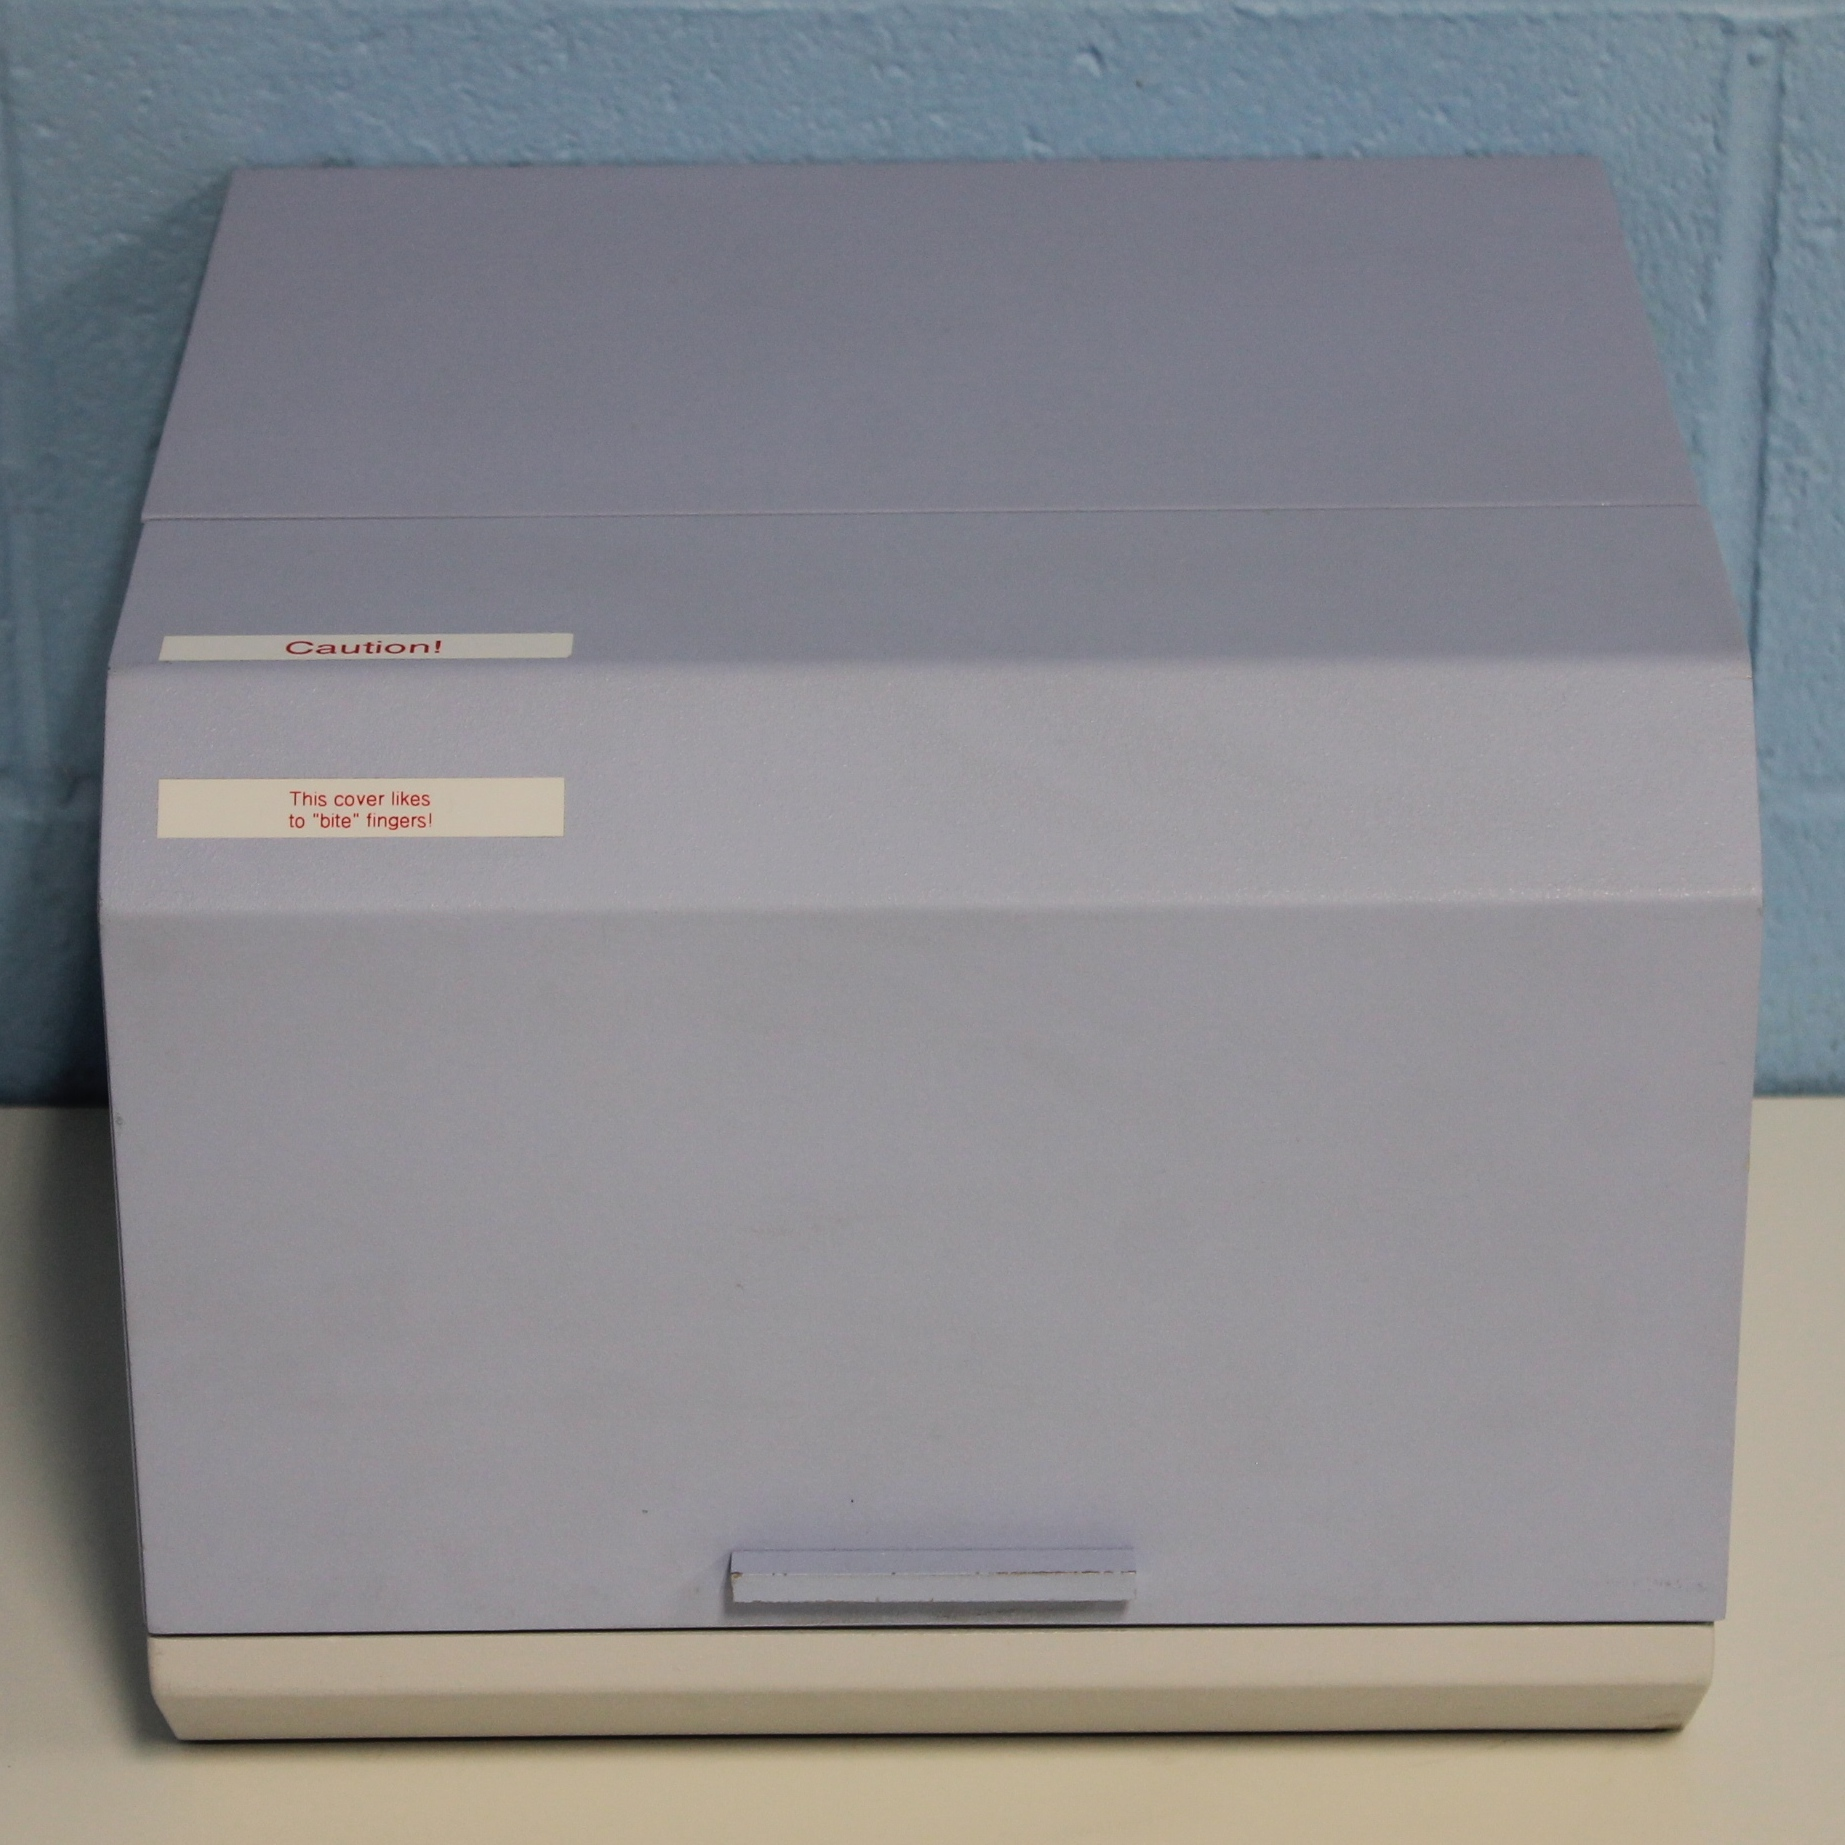 Perkin Elmer Well Plate Reader Accessory P/N L2250035 for the LS 50B Image